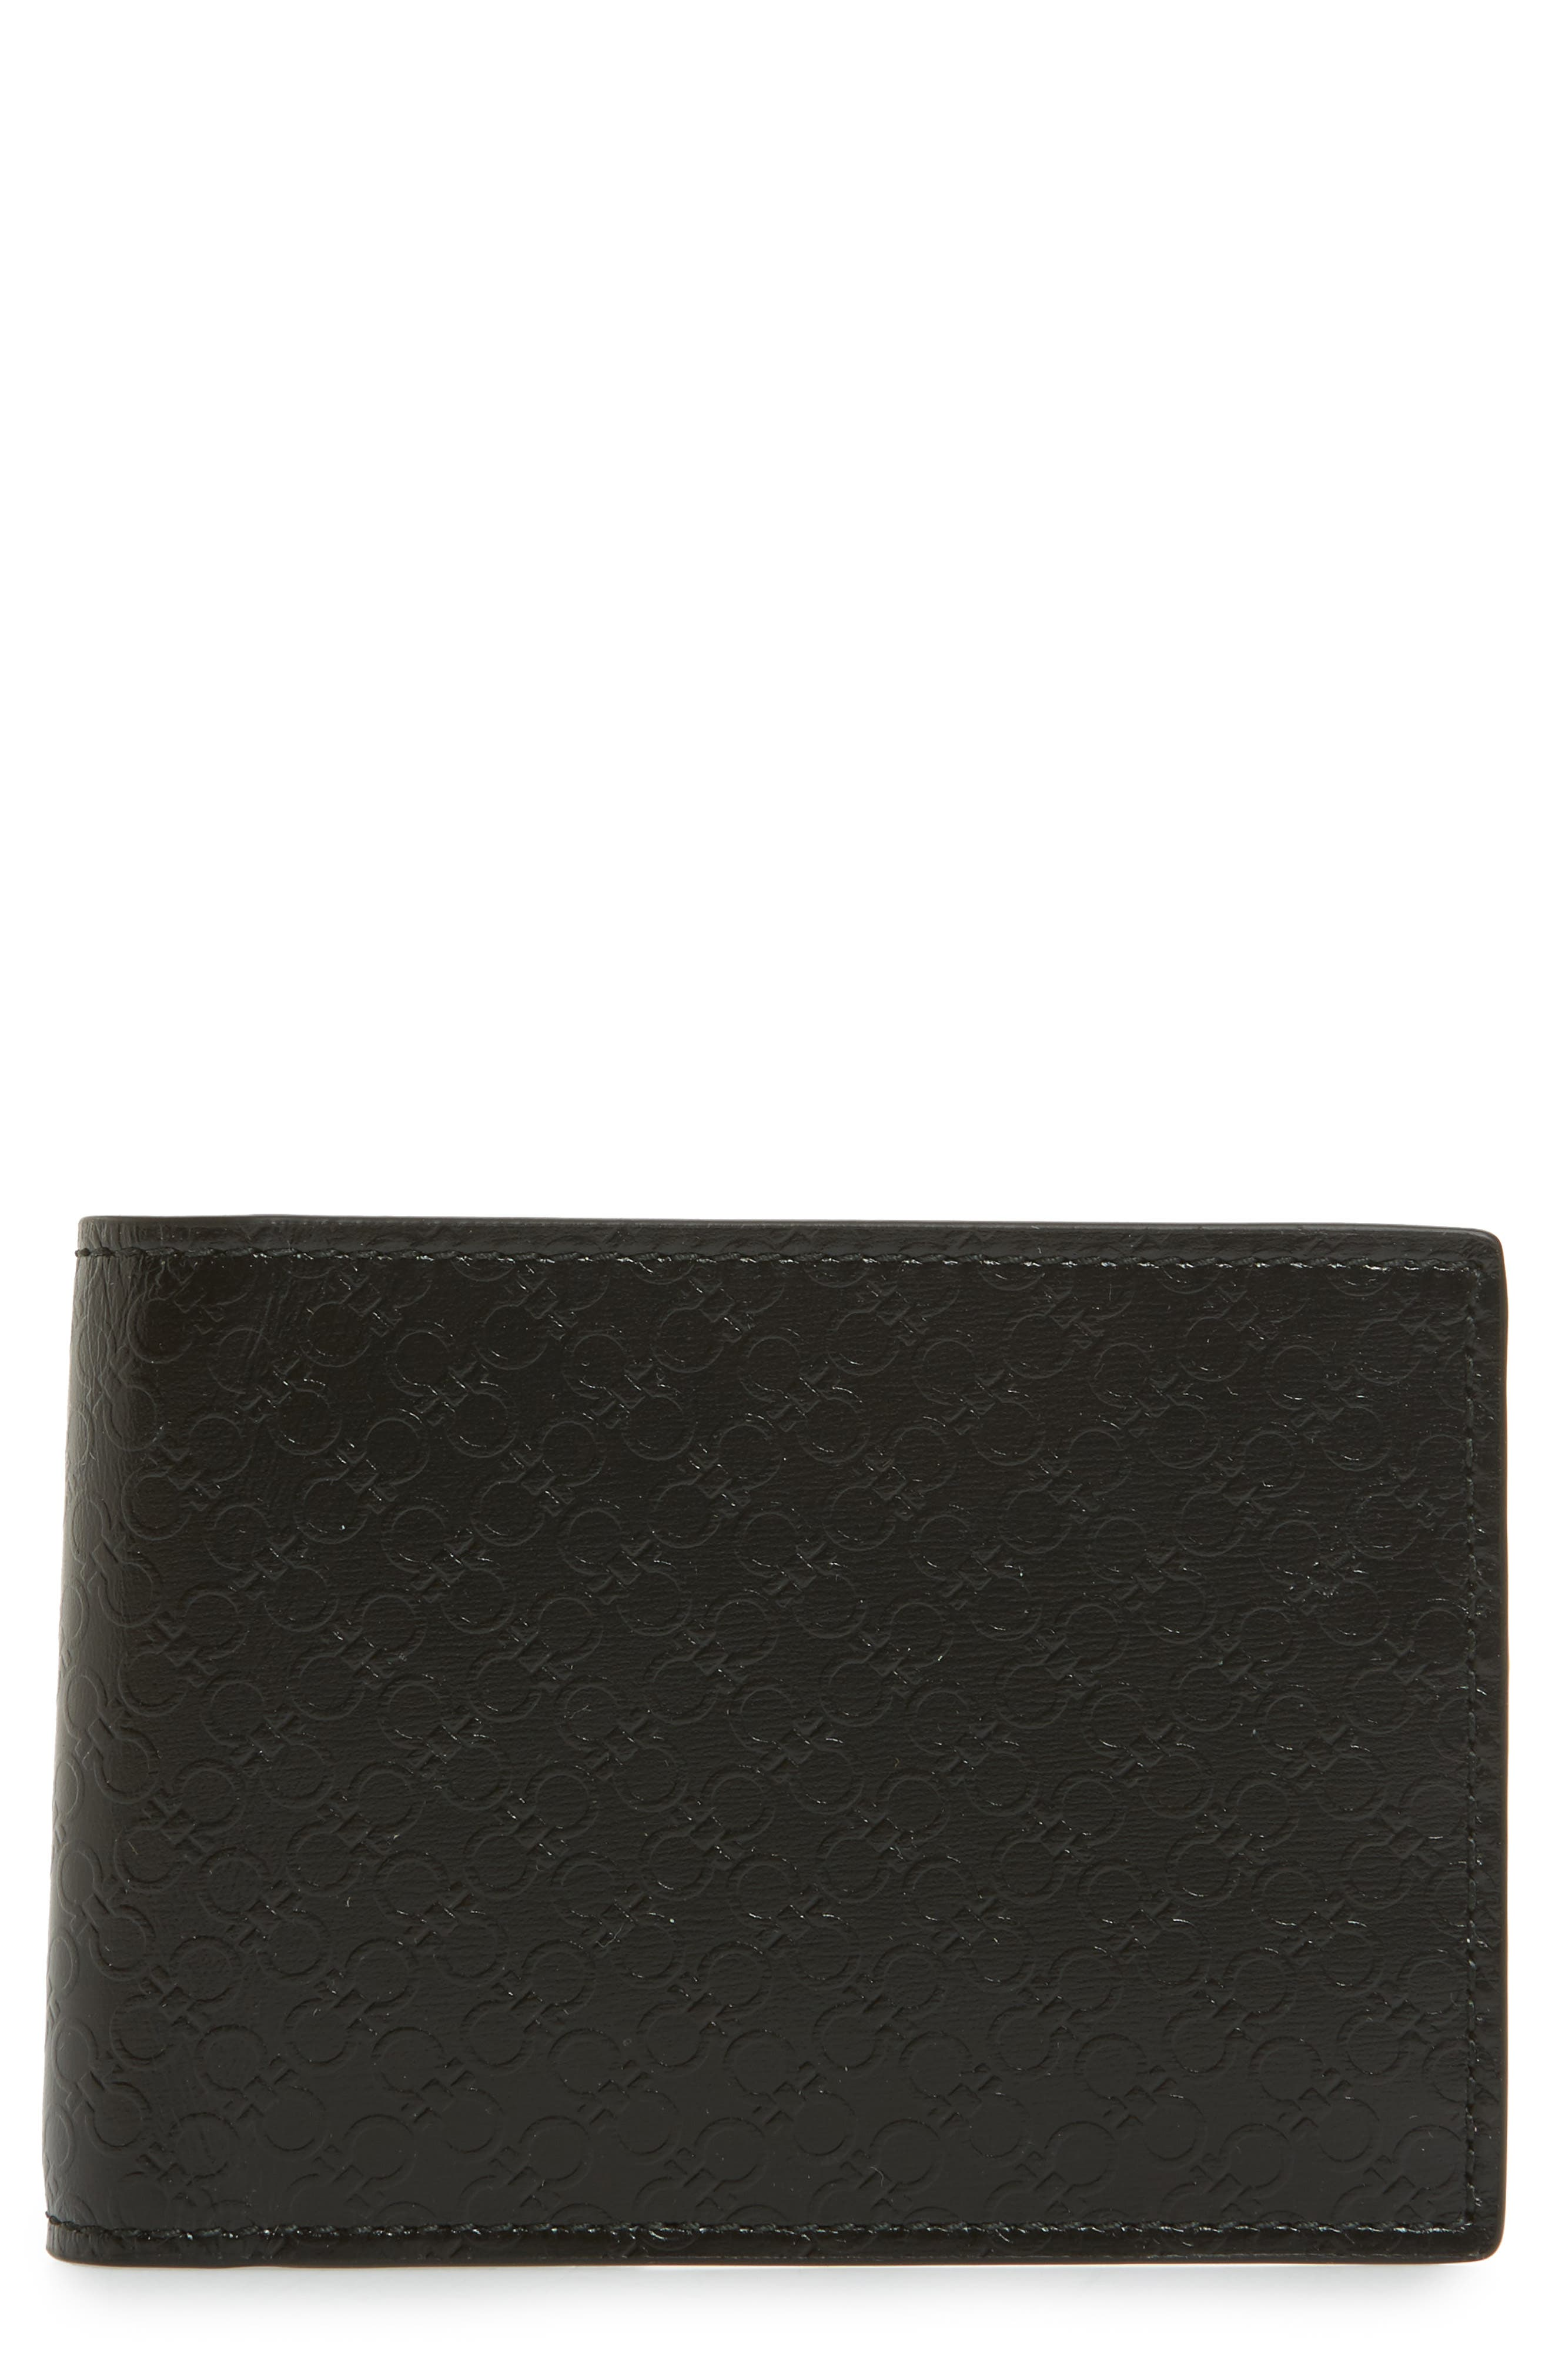 Gancini Leather Card Case,                             Main thumbnail 1, color,                             001